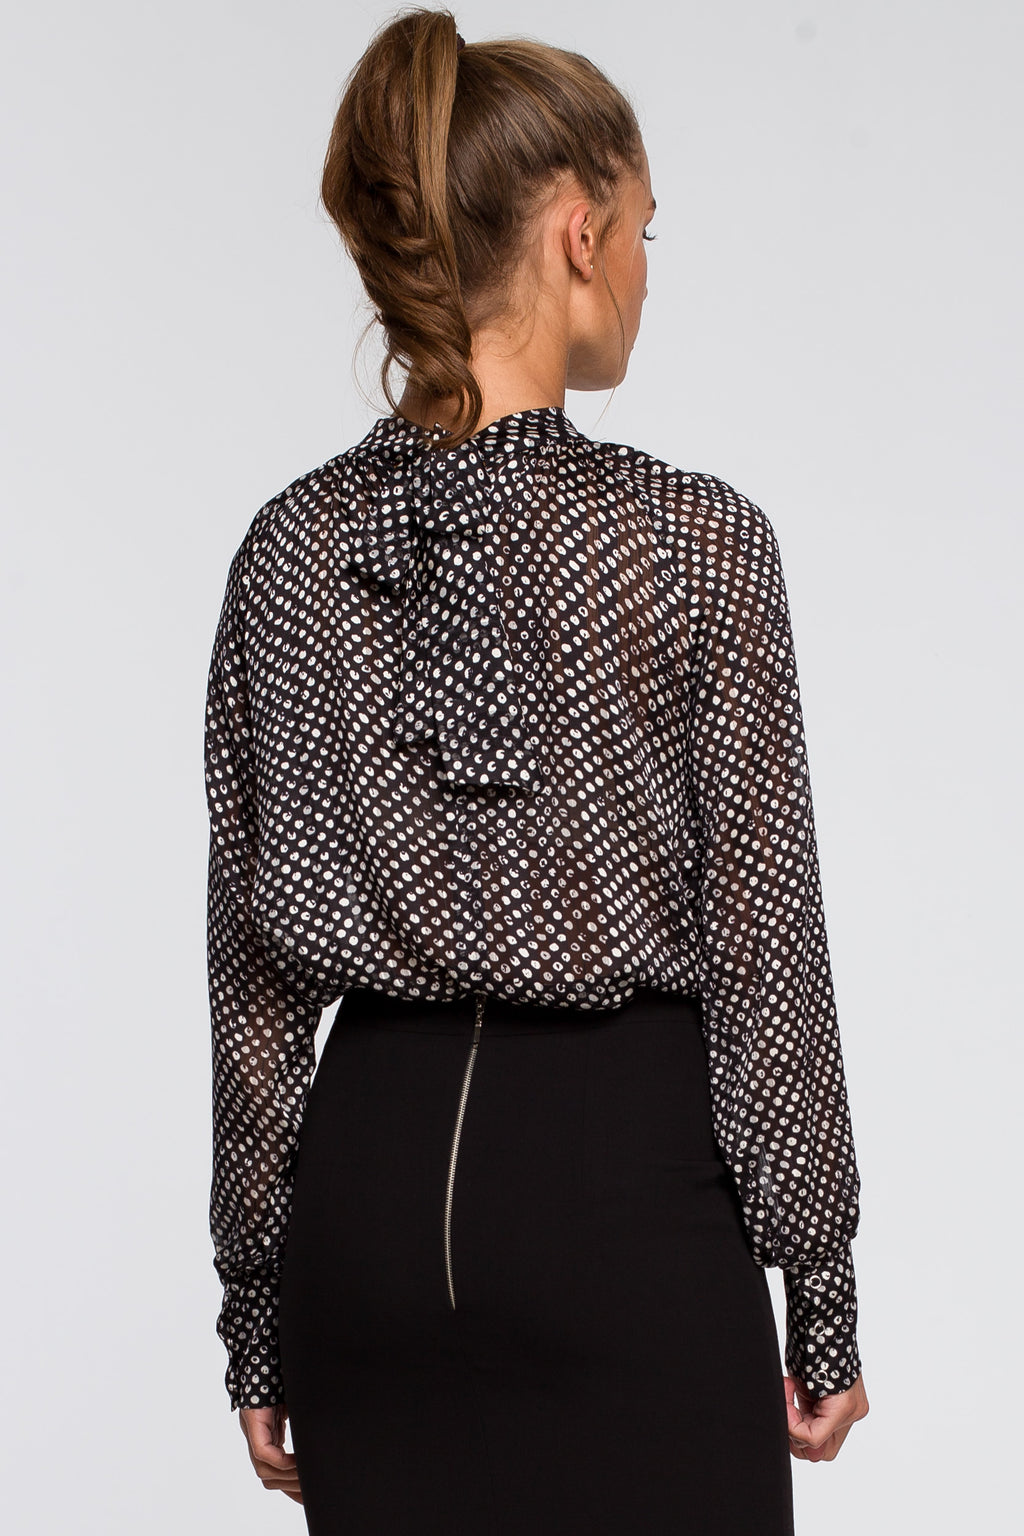 Chiffon Black Polka Print Blouse With Tied Back - So Chic Boutique